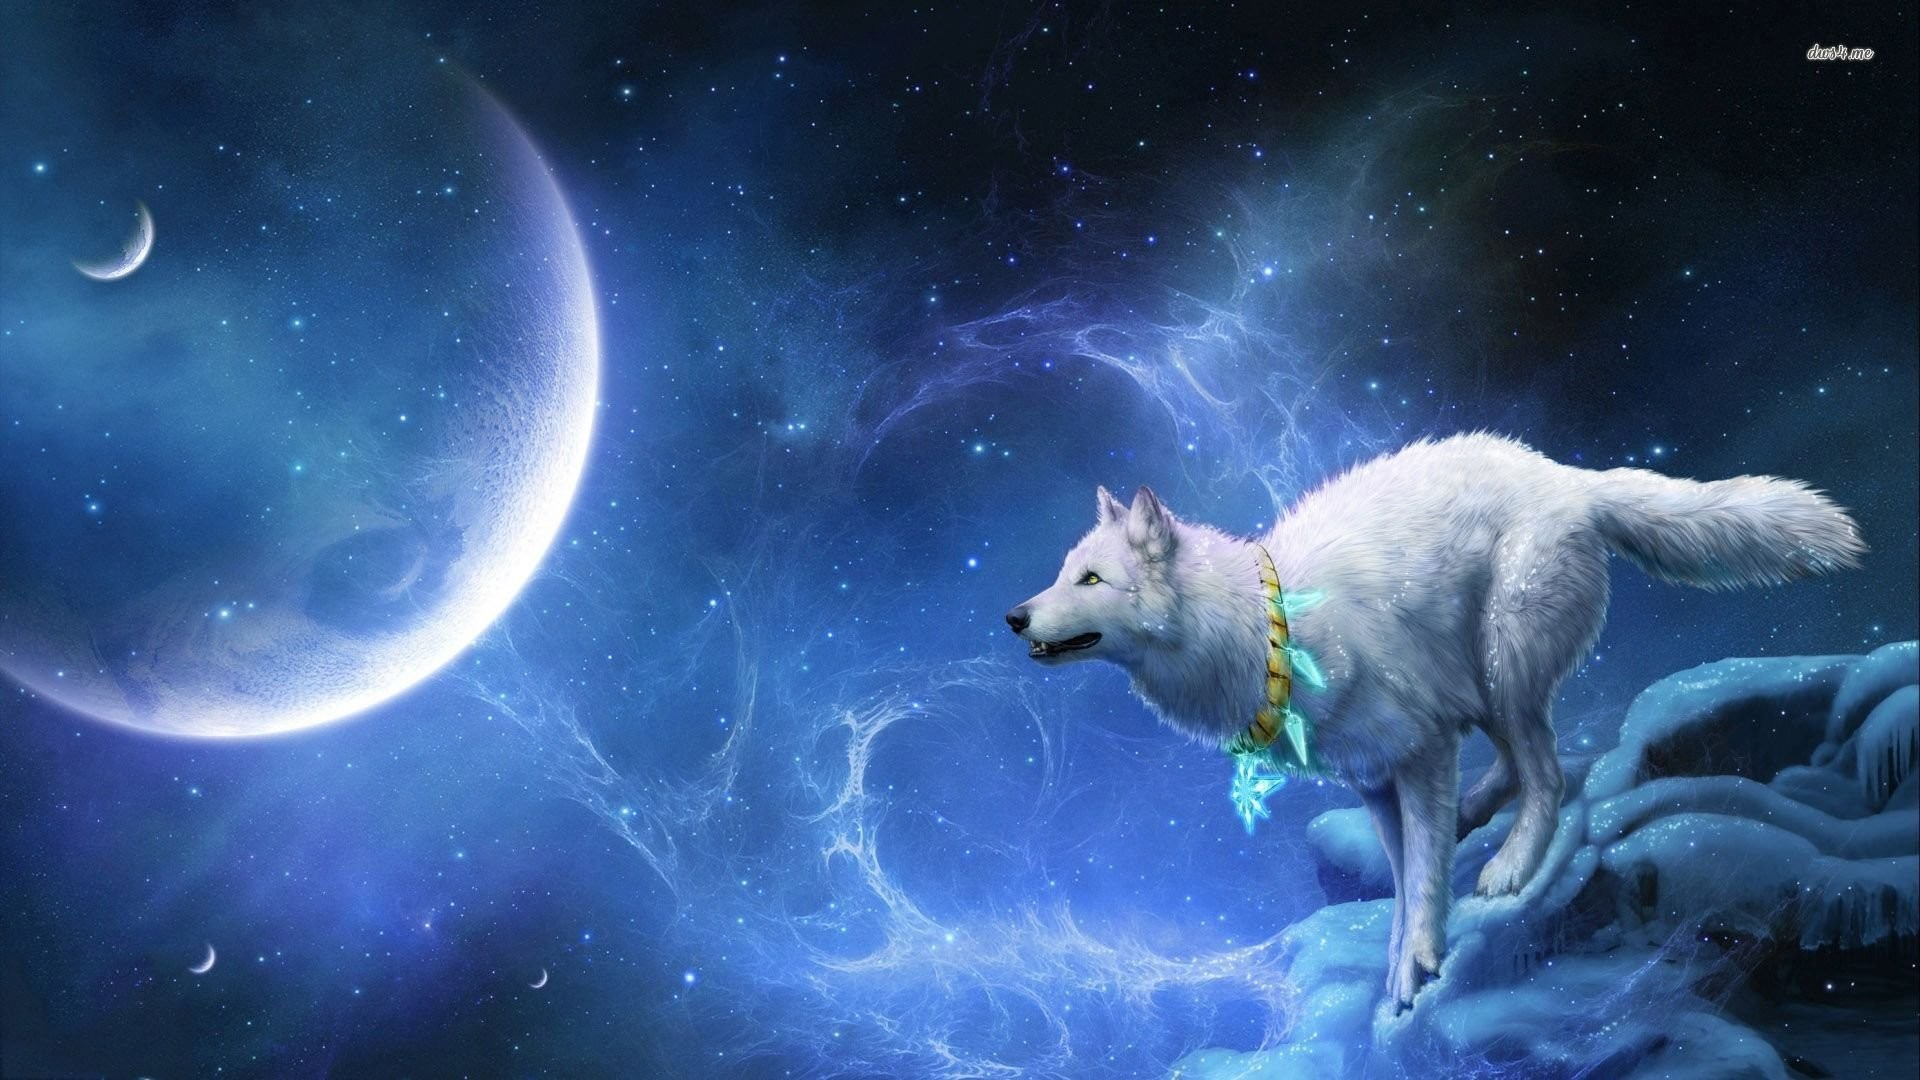 1920x1080 Blue Moon Wolf Wallpapers High Quality Resolution Toueb 1920×1080